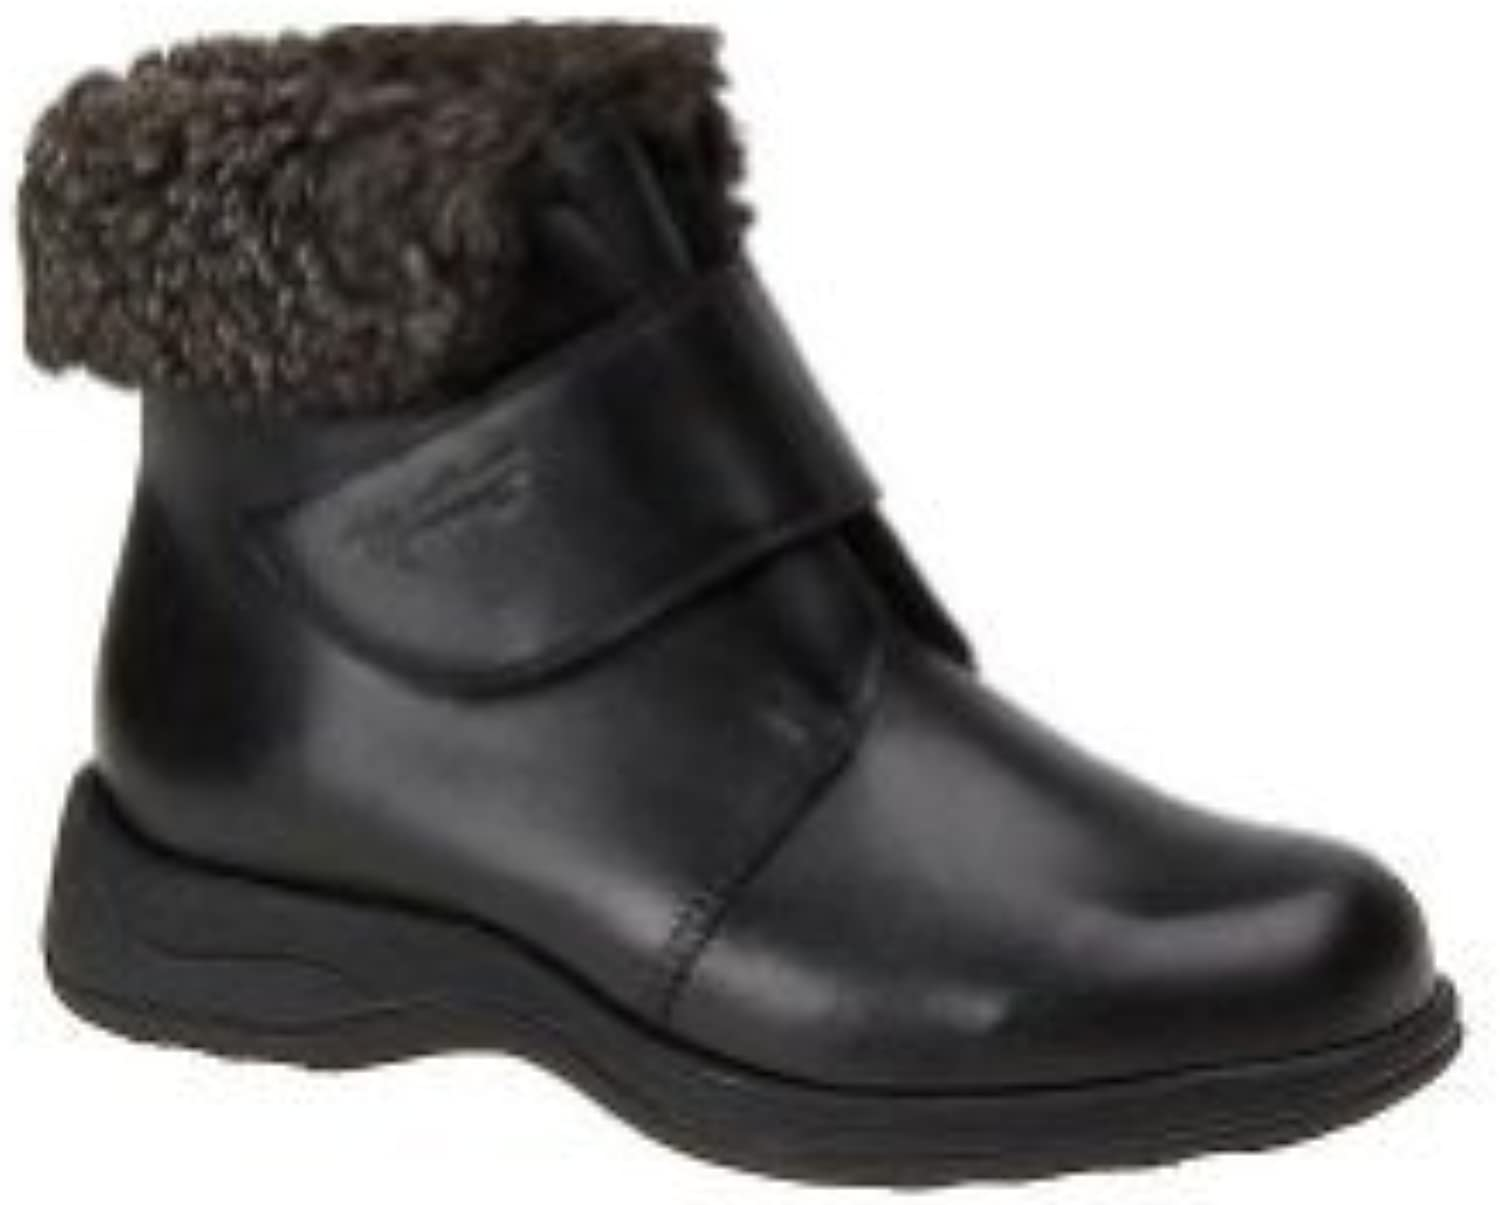 Martino Womens Black Leather Polar Boots with Fleece Lining 6.5 M US